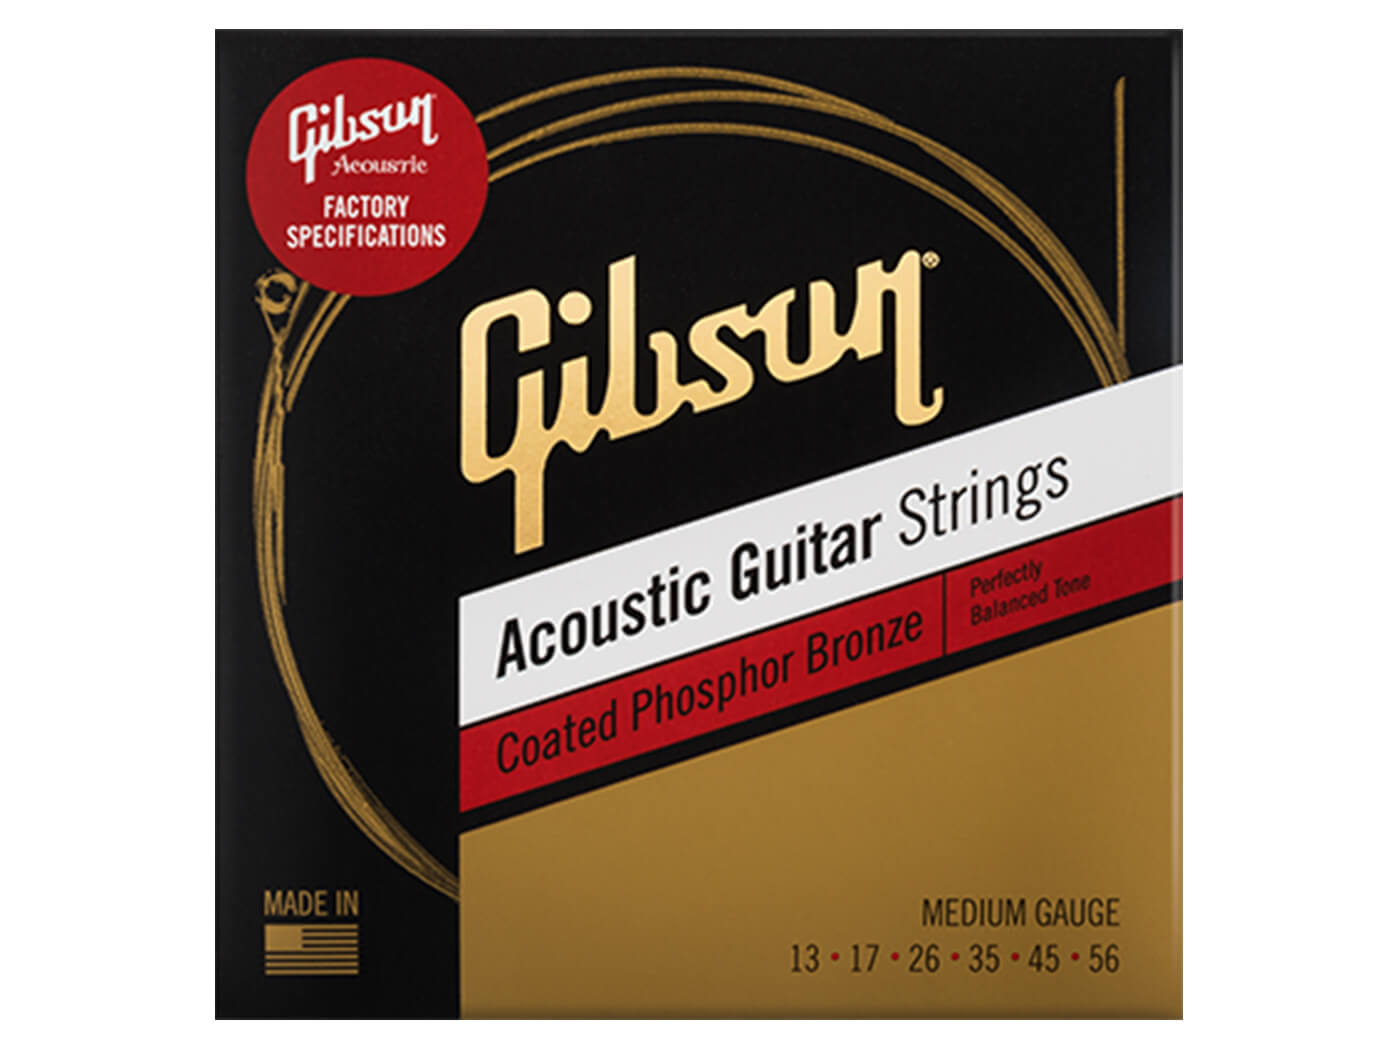 Gibson Acoustic guitar strings medium gauge